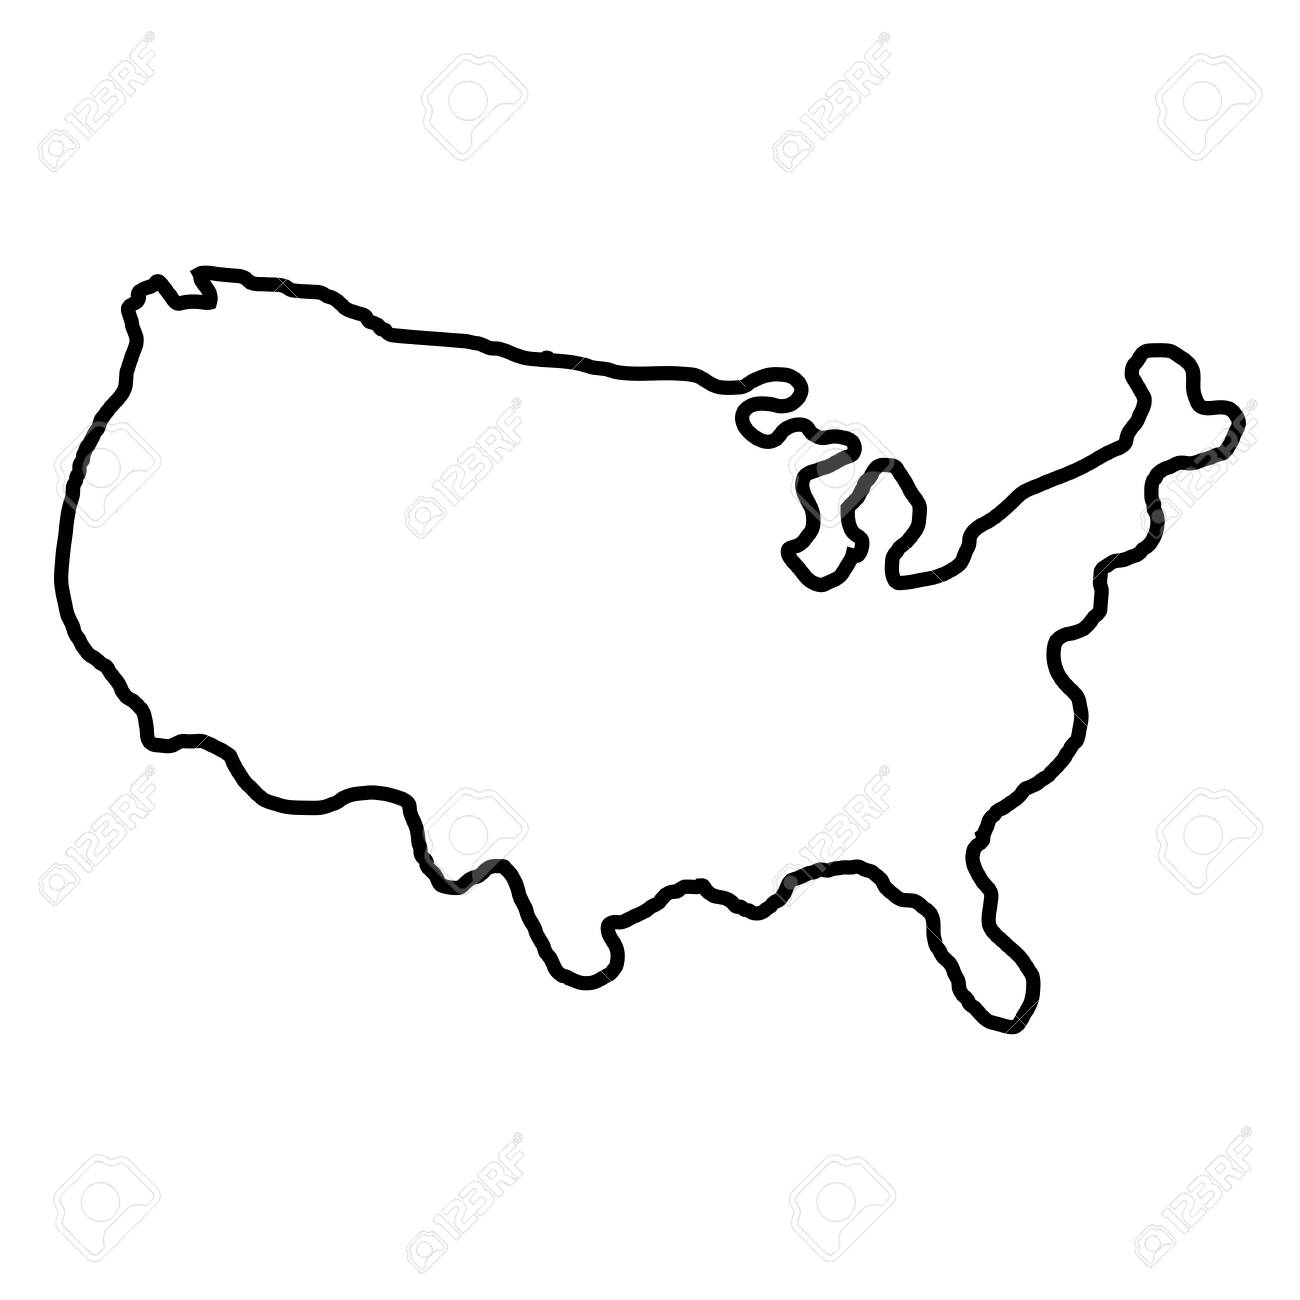 States of America territory on white background. North America. Vector illustration. - 139656694